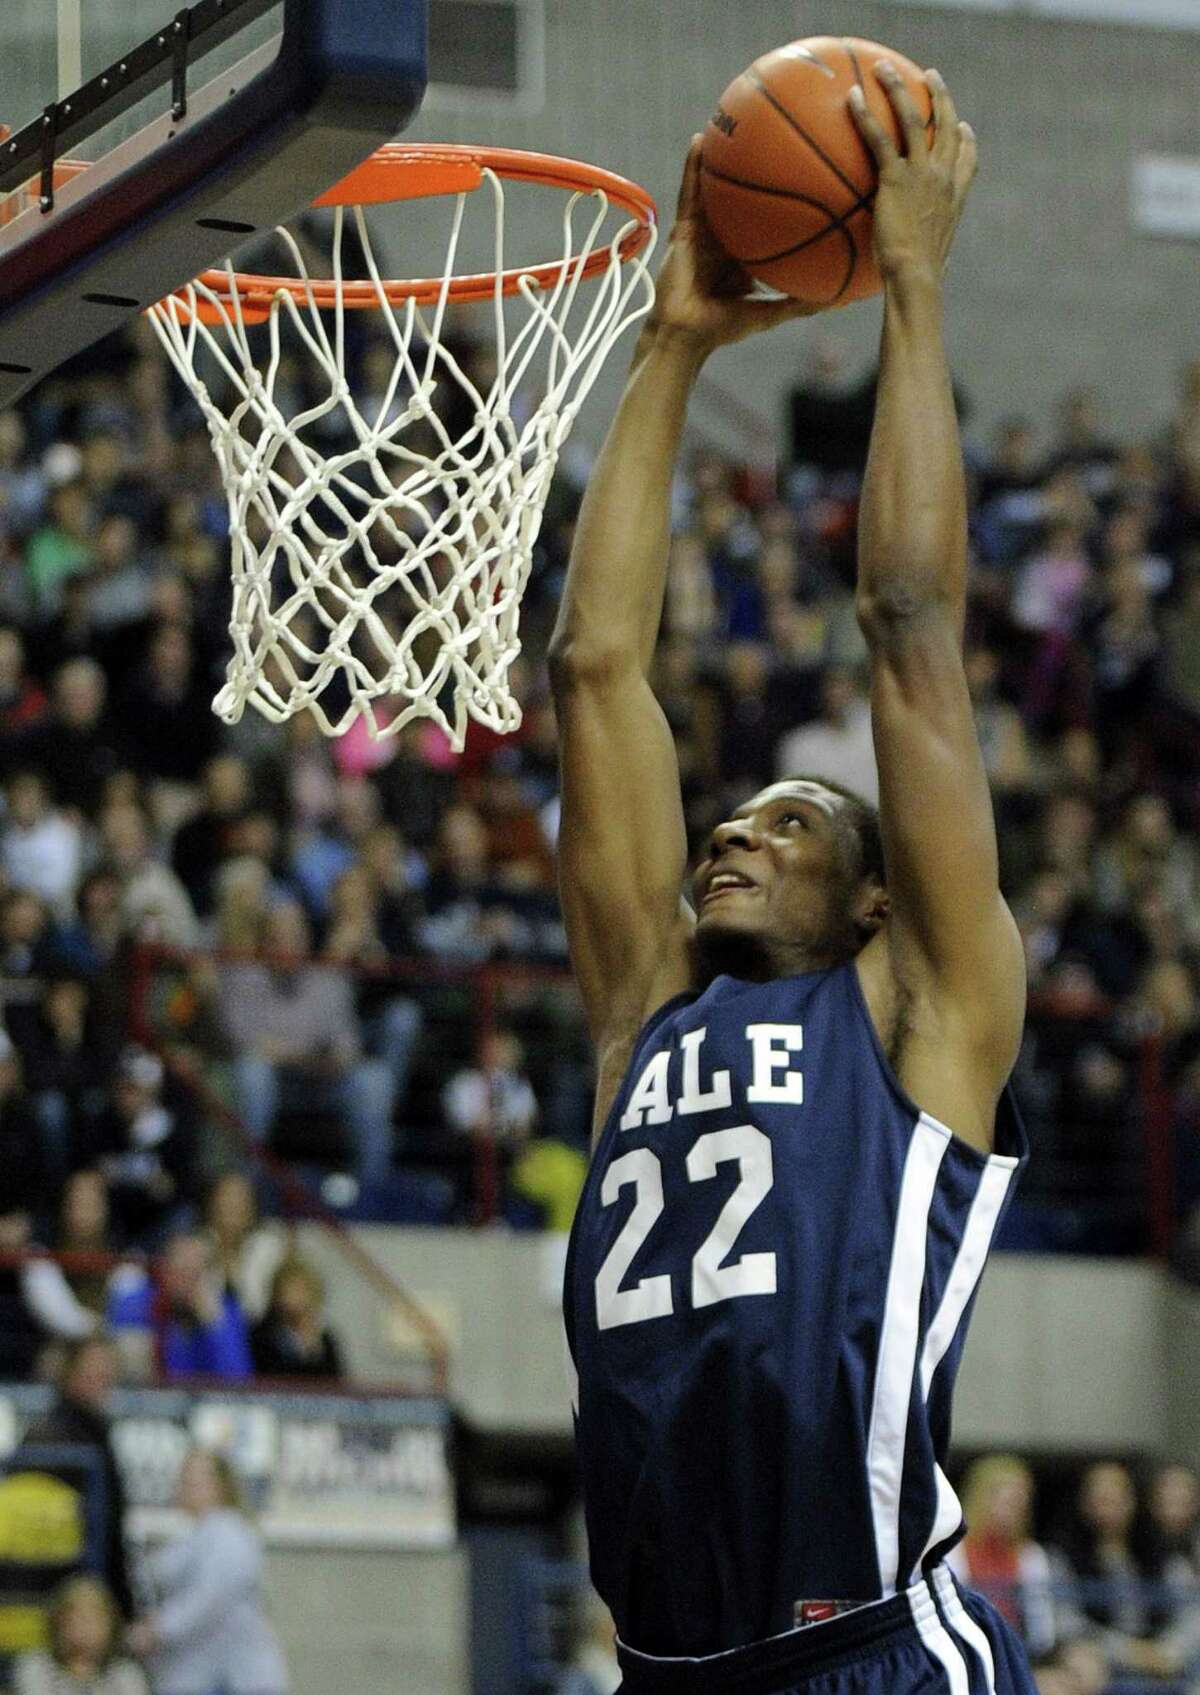 Yale's Justin Sears (22) scores against Connecticut during the first half of an NCAA college basketball game in Storrs, Conn., on Sunday, Dec. 5, 2014. (AP Photo/Fred Beckham)